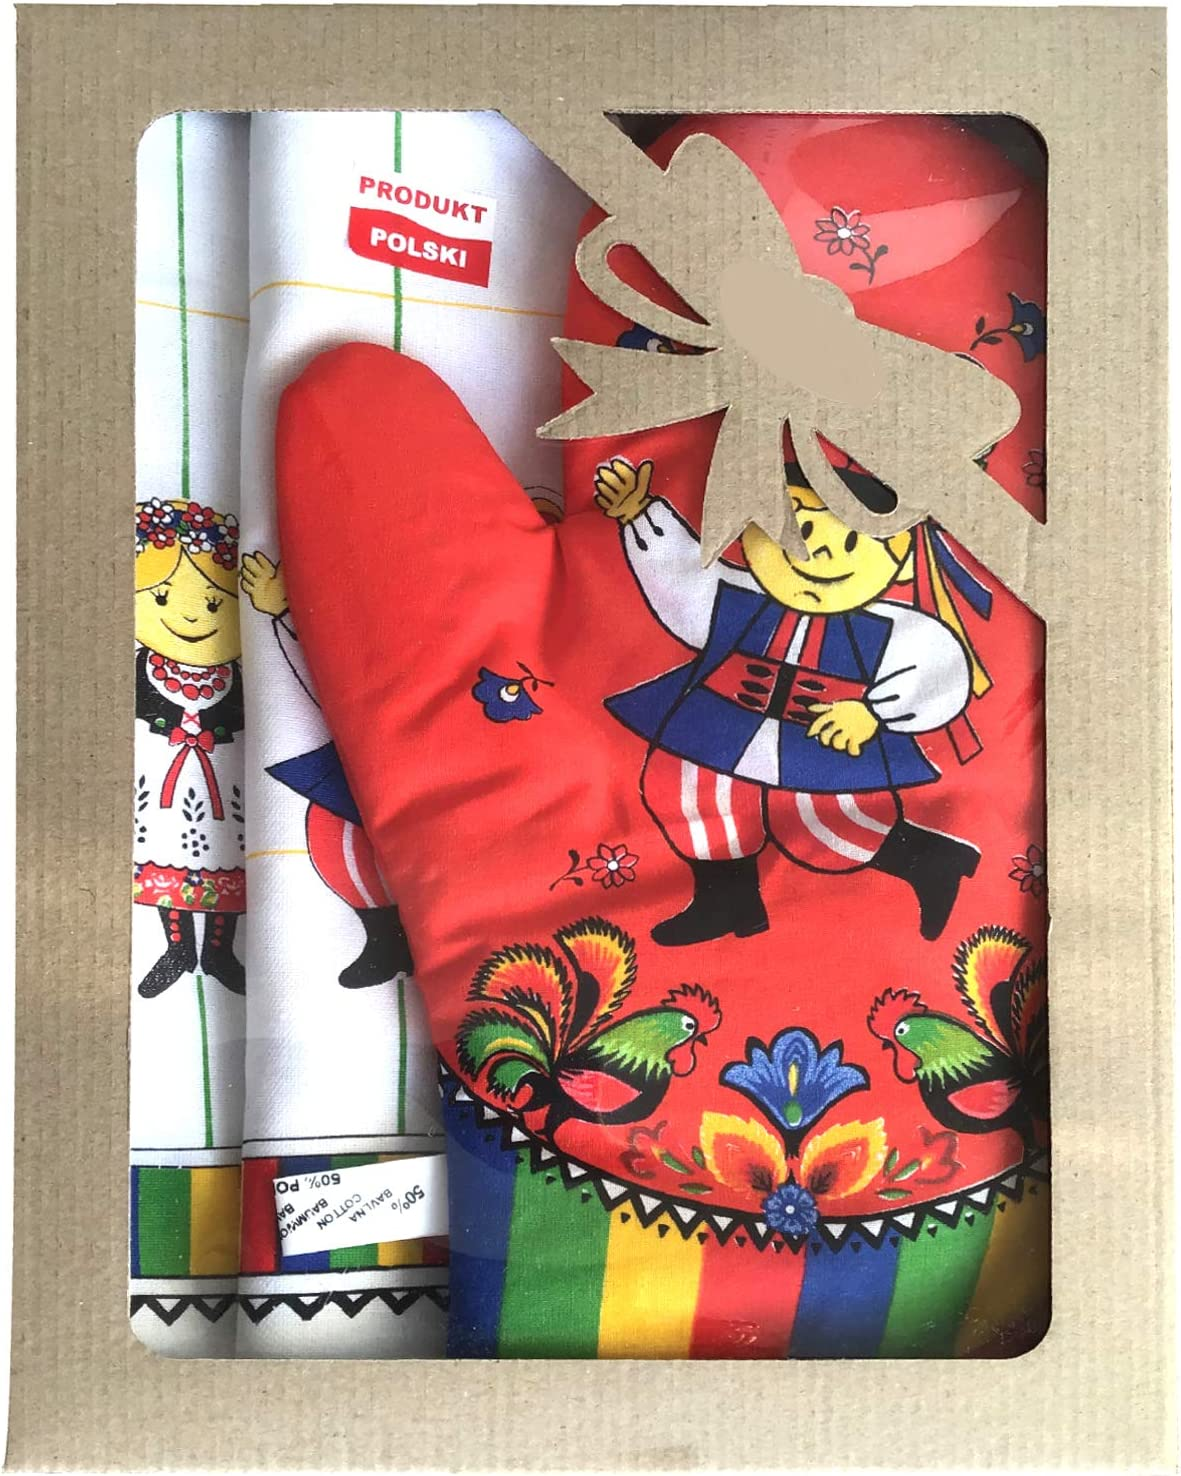 Polish Folk Art Krakow Dancers Gift Set with 2 Kitchen Towels and 1 Oven Mitt in Box (Red)